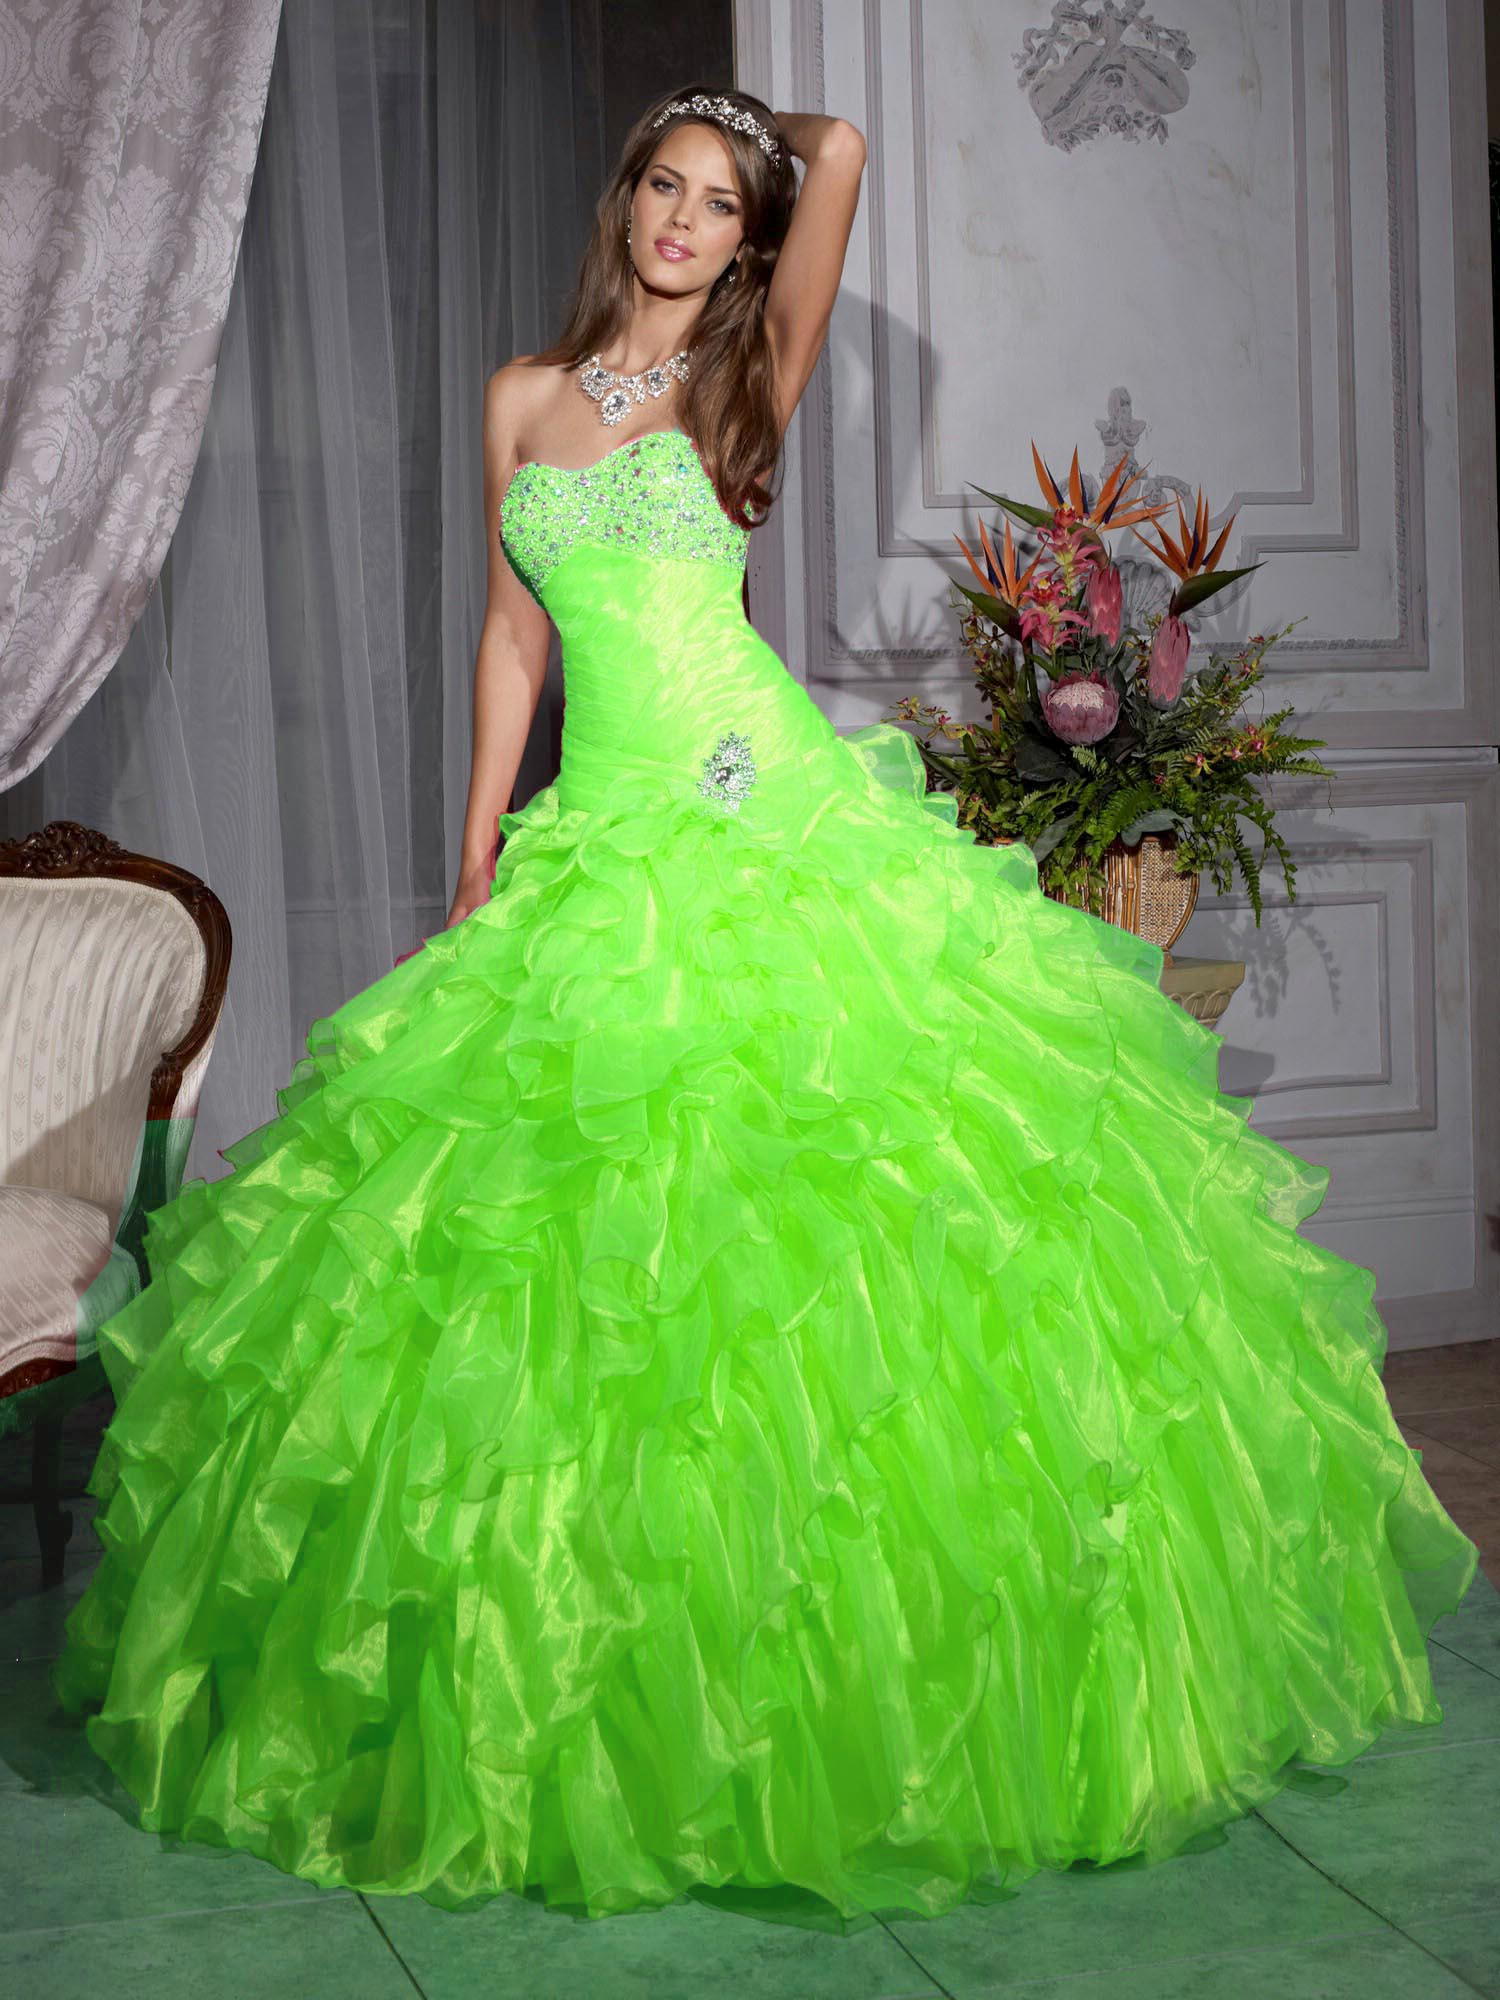 Green Quinceanera Dresses | Dressed Up Girl